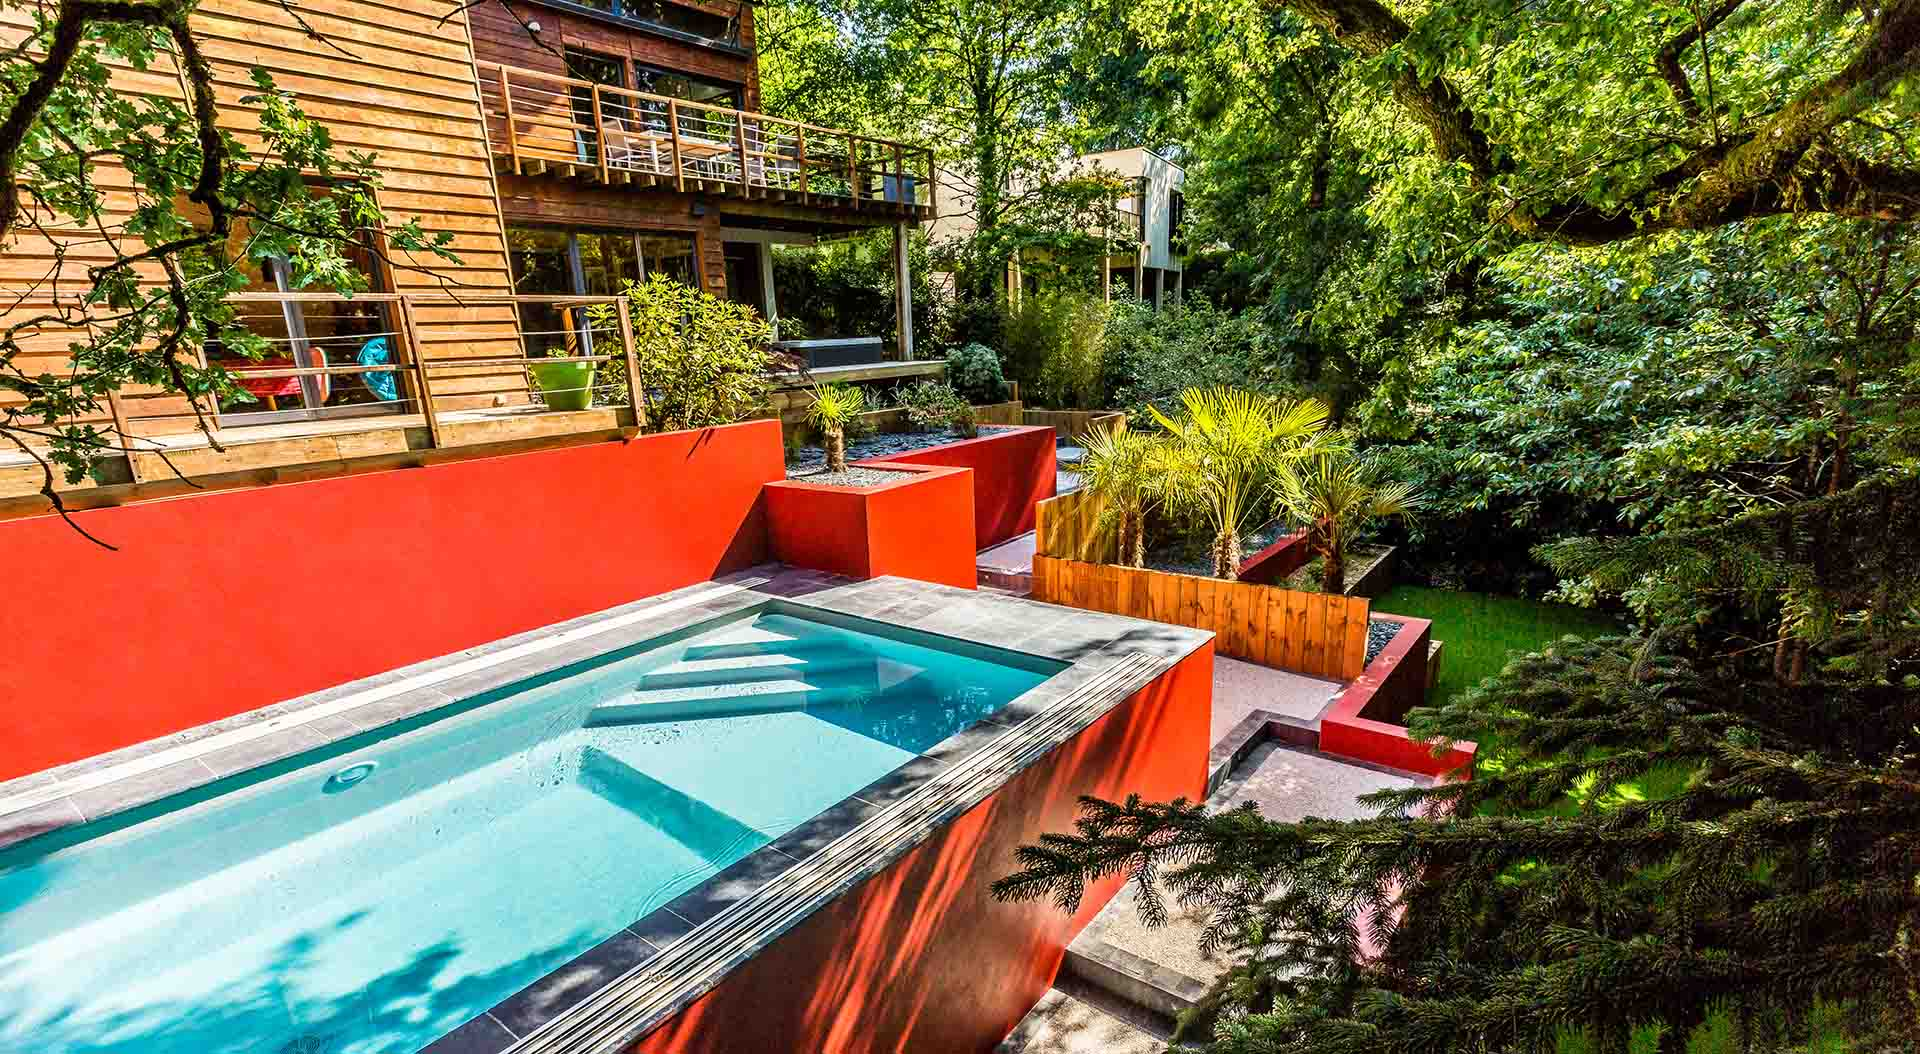 Nos r alisations de jardin et am nagement d 39 ext rieur en for Piscine look design